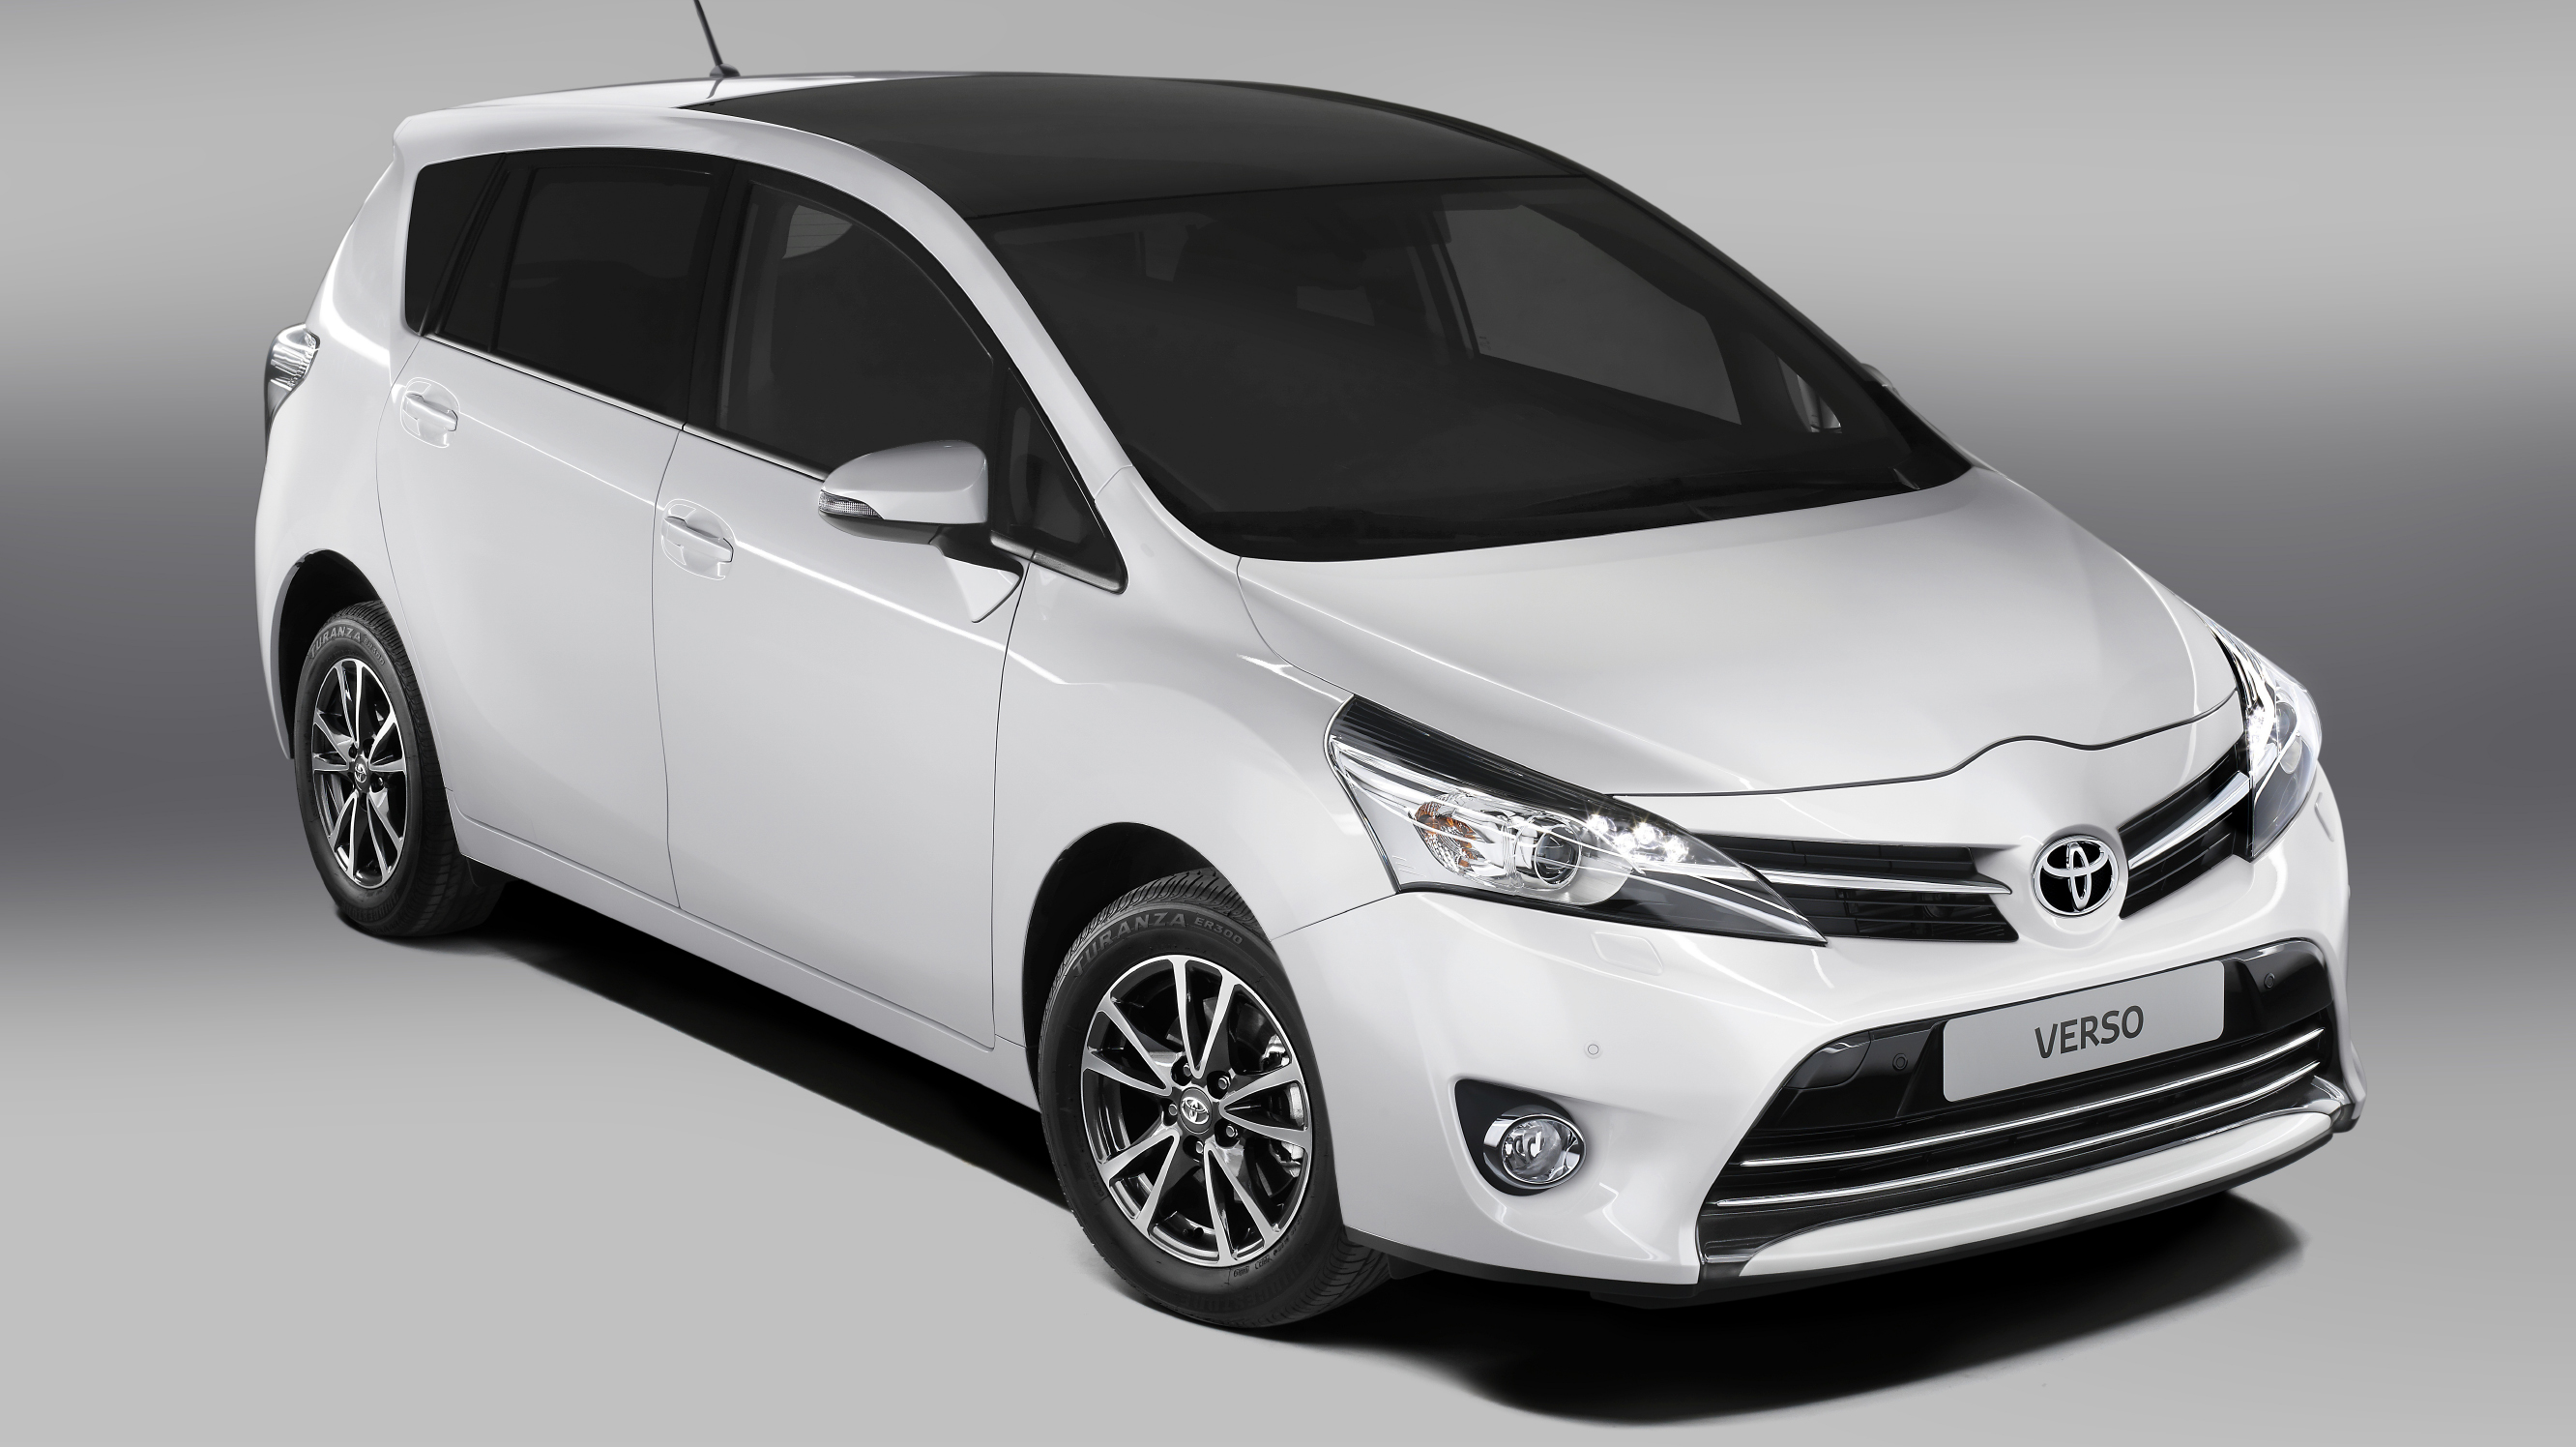 2017 toyota verso review top gear. Black Bedroom Furniture Sets. Home Design Ideas